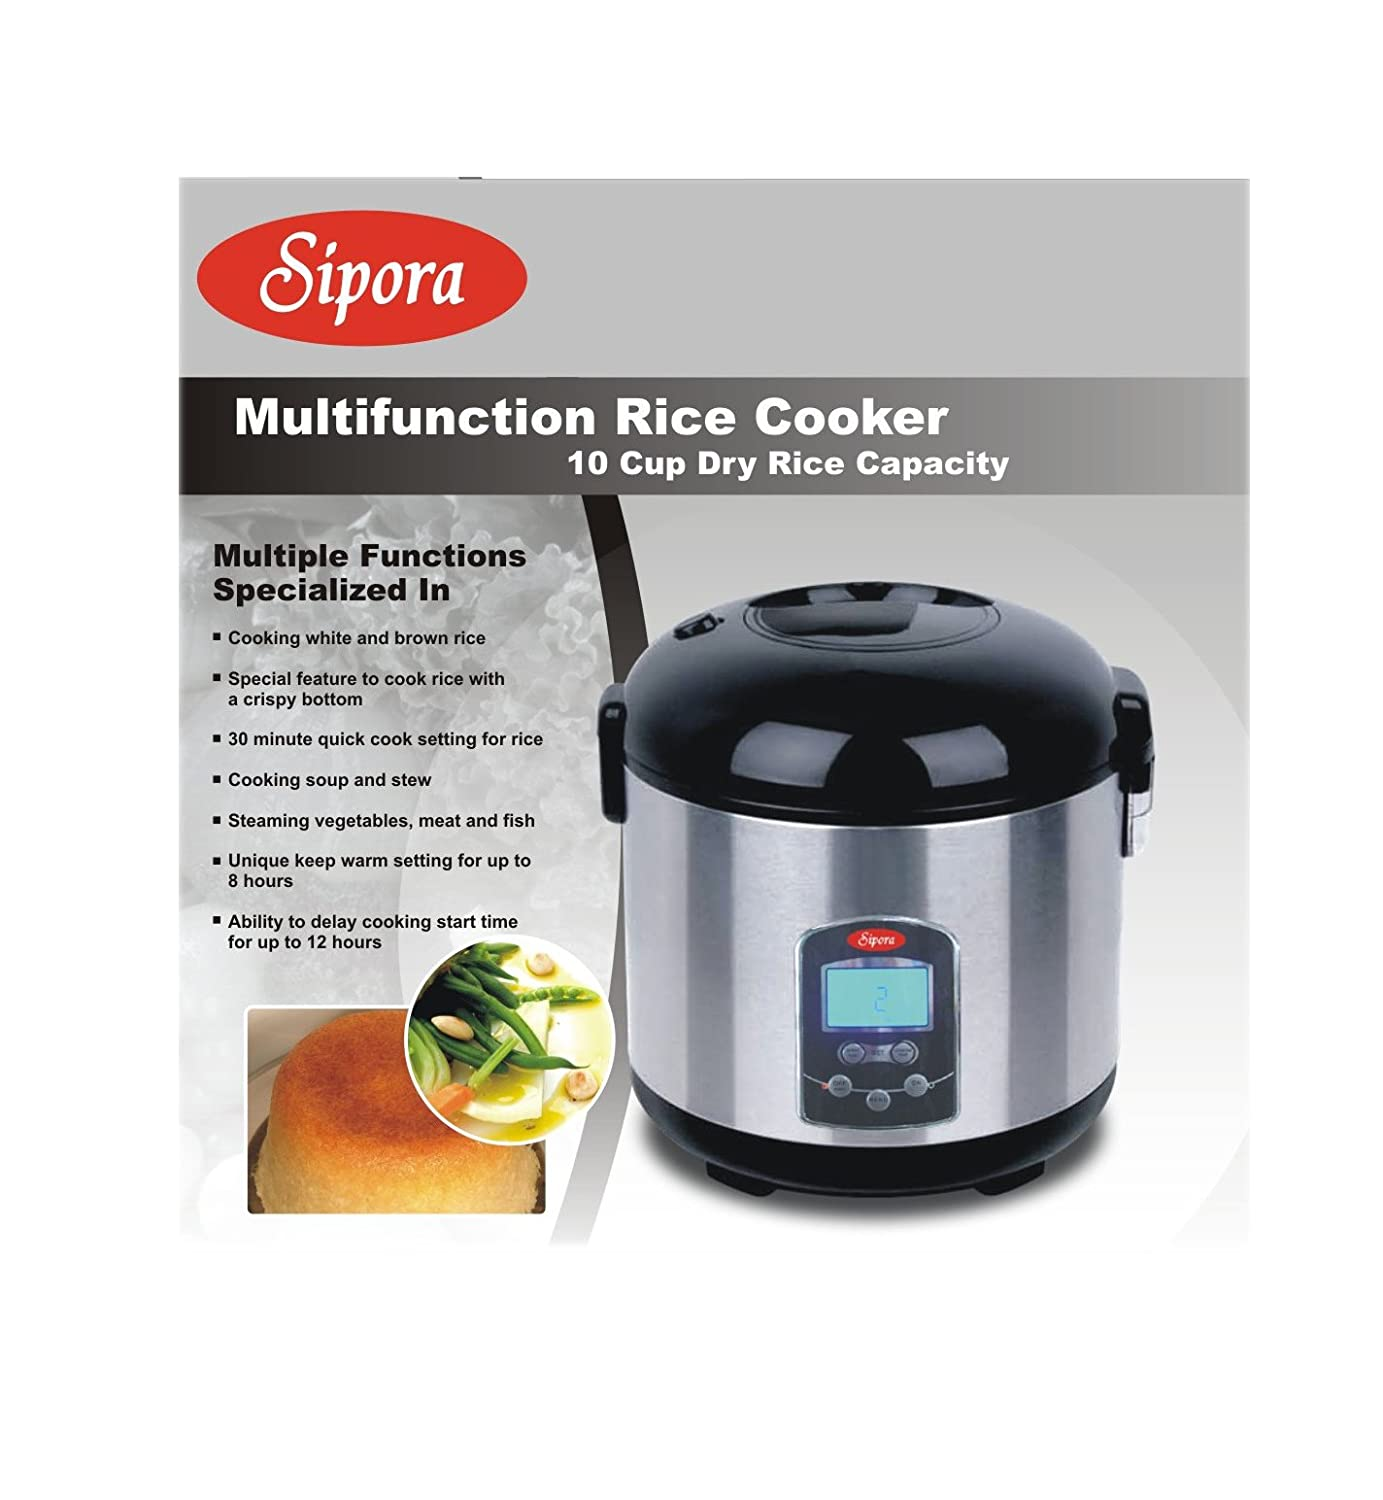 Sipora 158-105 10 Cup Multi-Function Programable Rice Cooker, Stainless Steel